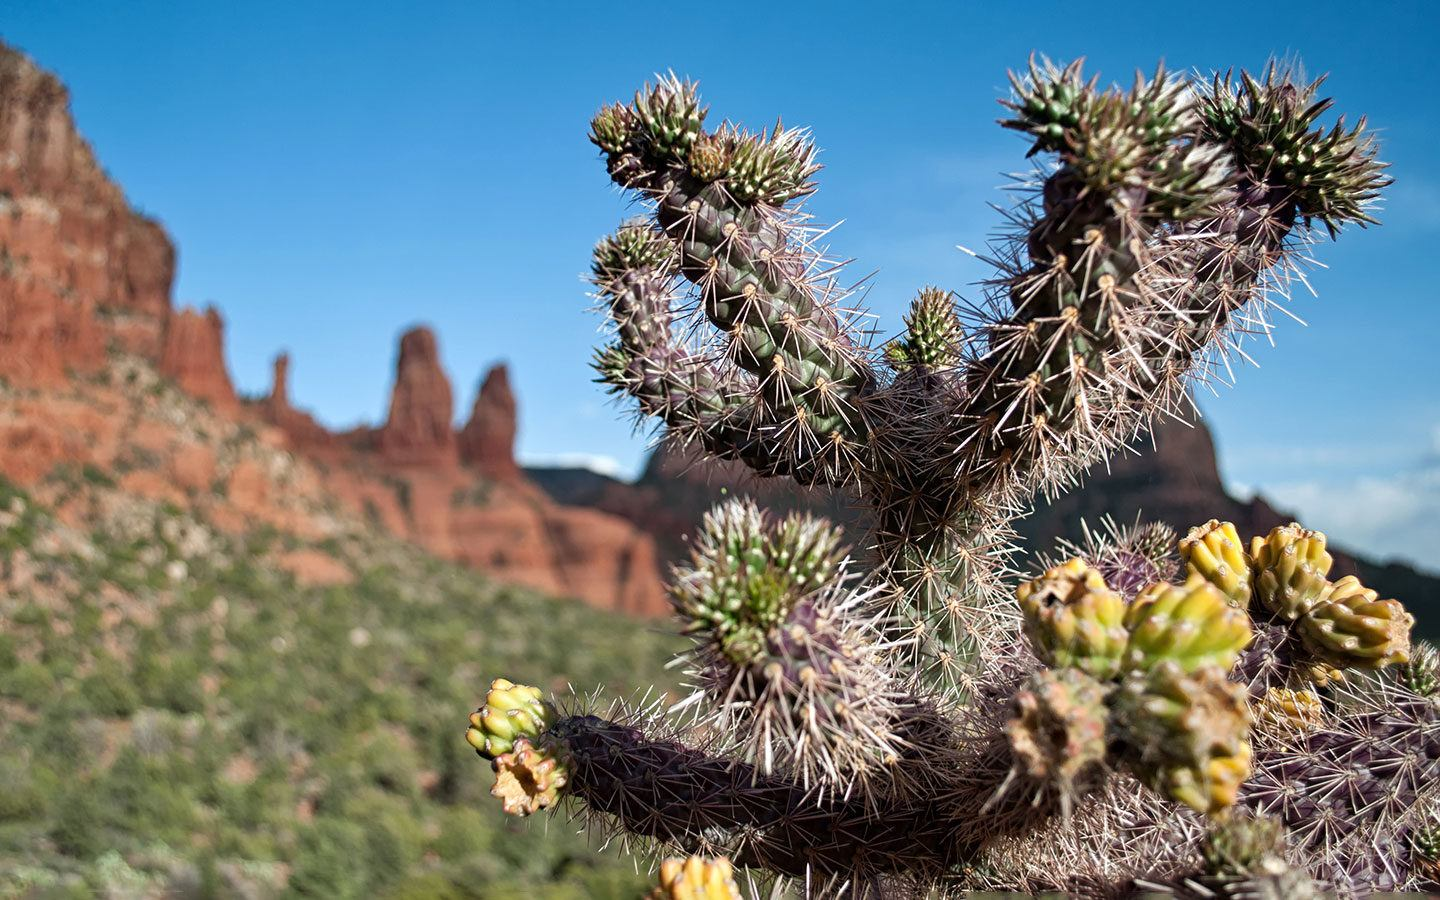 Cactus in front of red rocks in Arizona